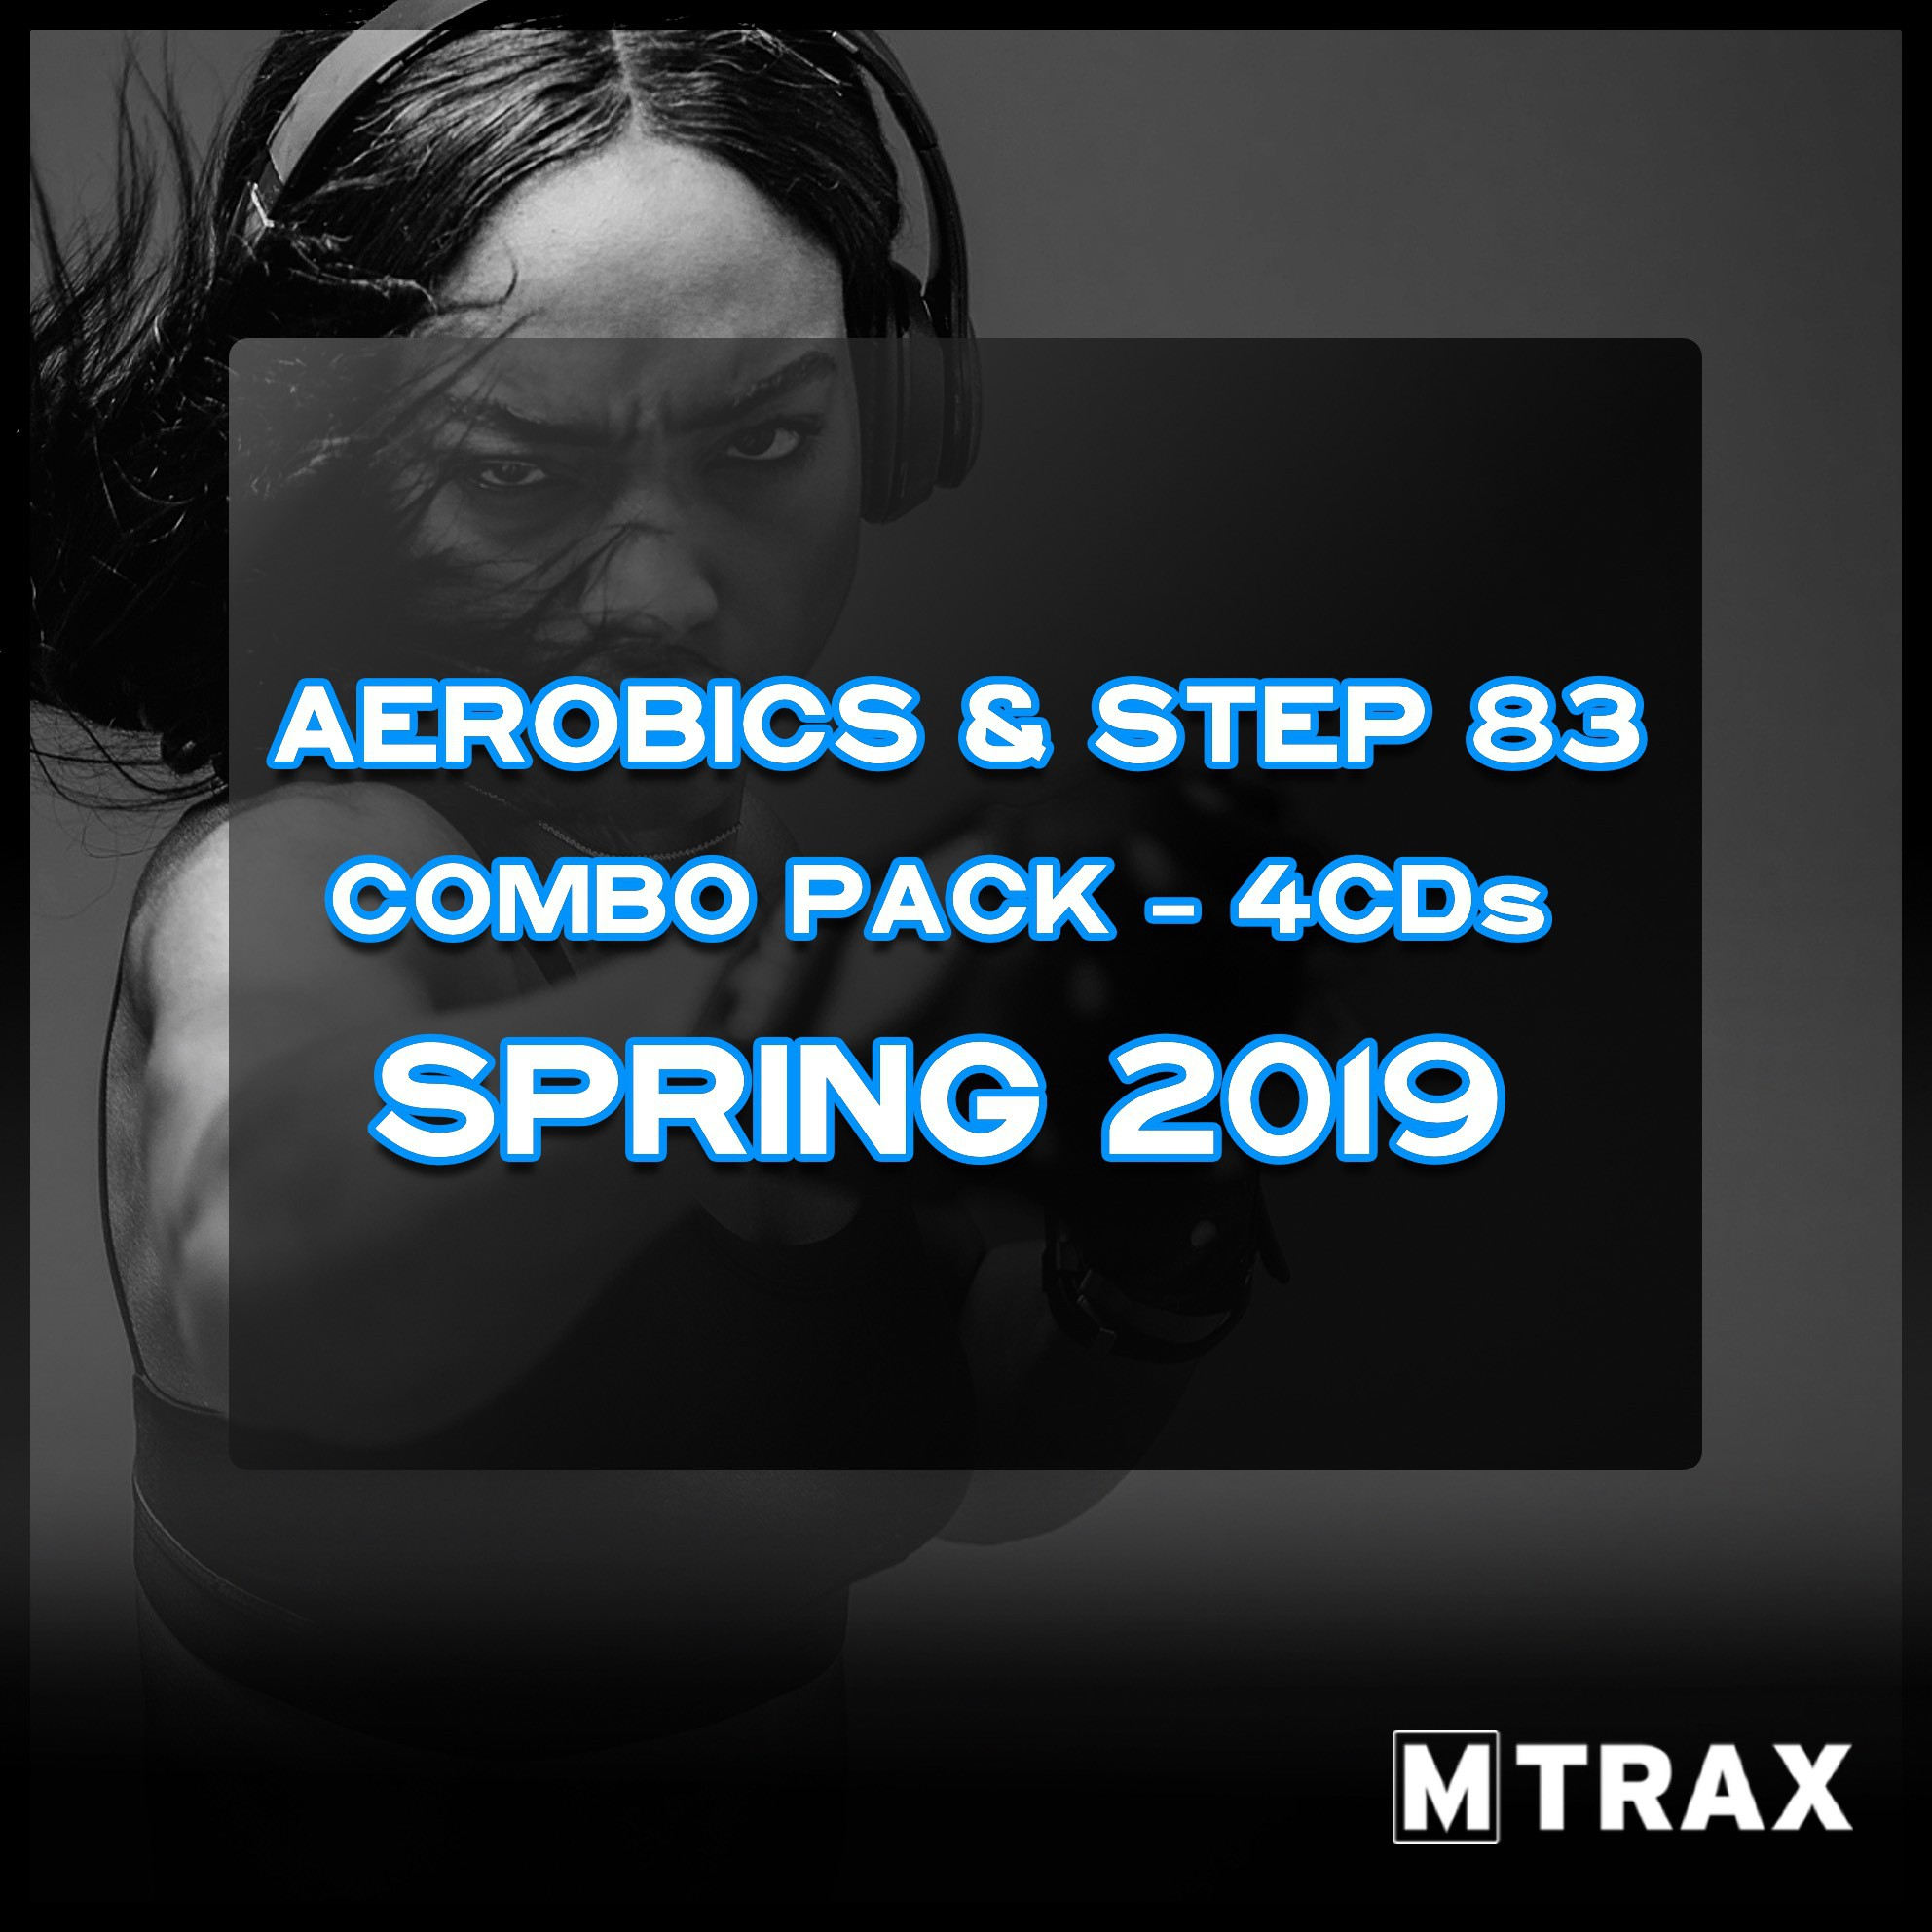 Aerobics & Step 83 Spring 2019 Combo Pack (4CDs)